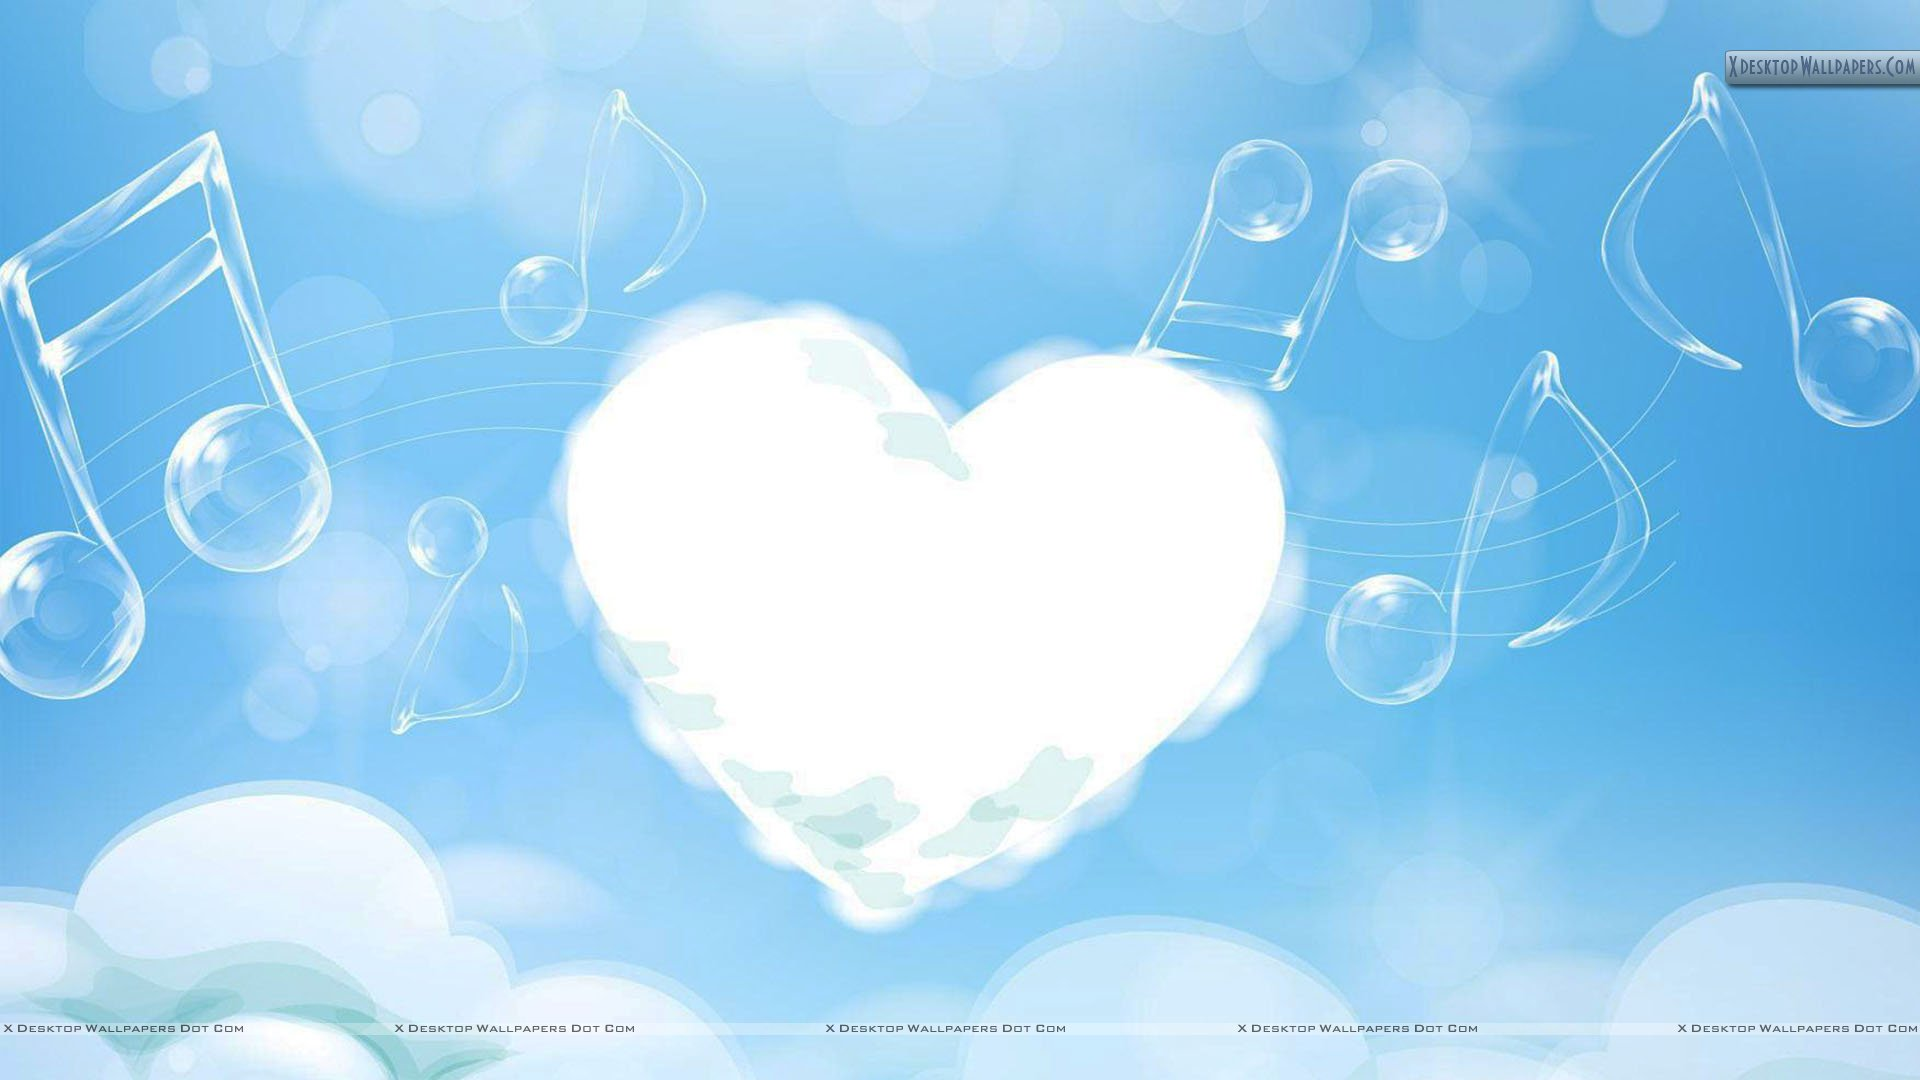 Download Wallpaper Blue Music - White-Cloud-Heart-And-Music-Strings-In-Sky  Graphic_463097.jpg?type\u003ddownload